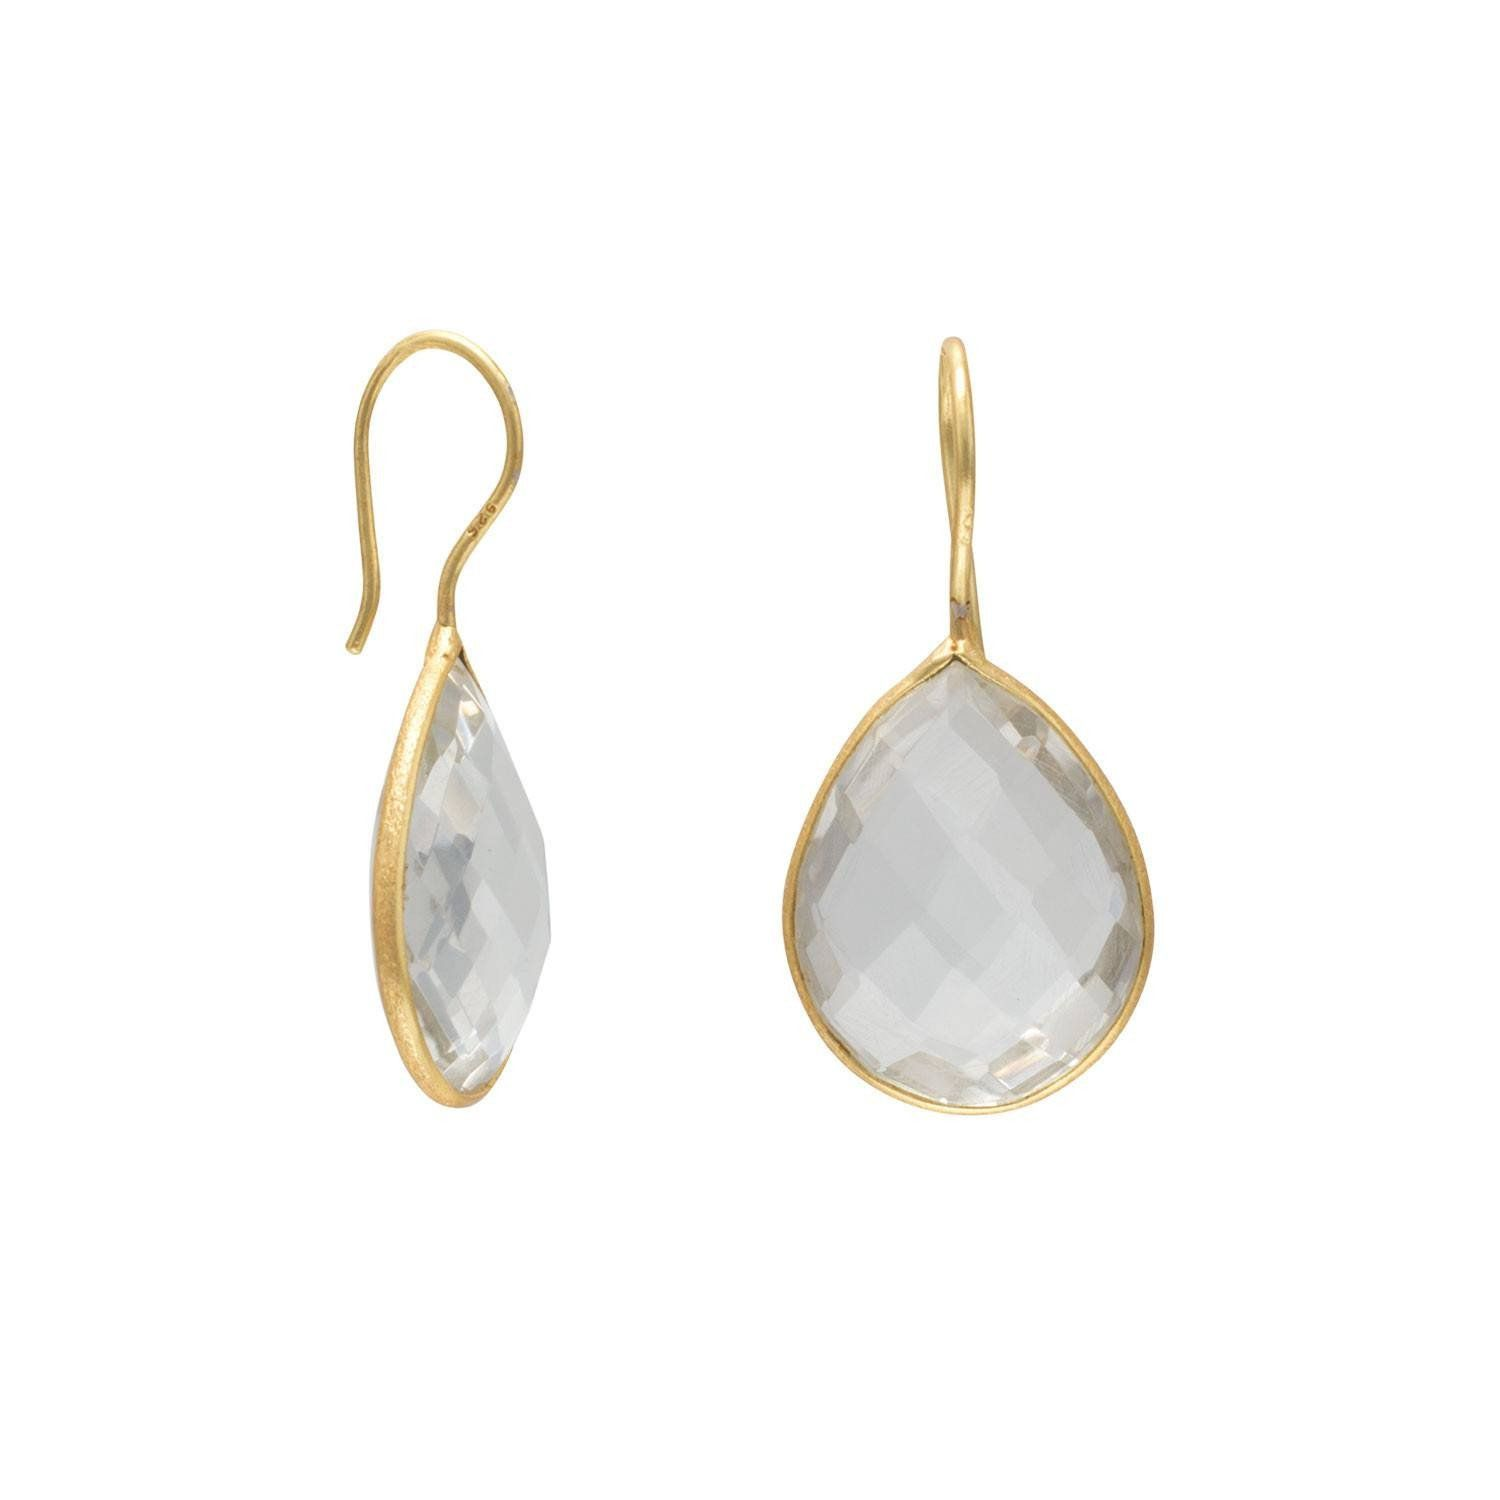 14K Gold Plated Clear Quartz Earrings